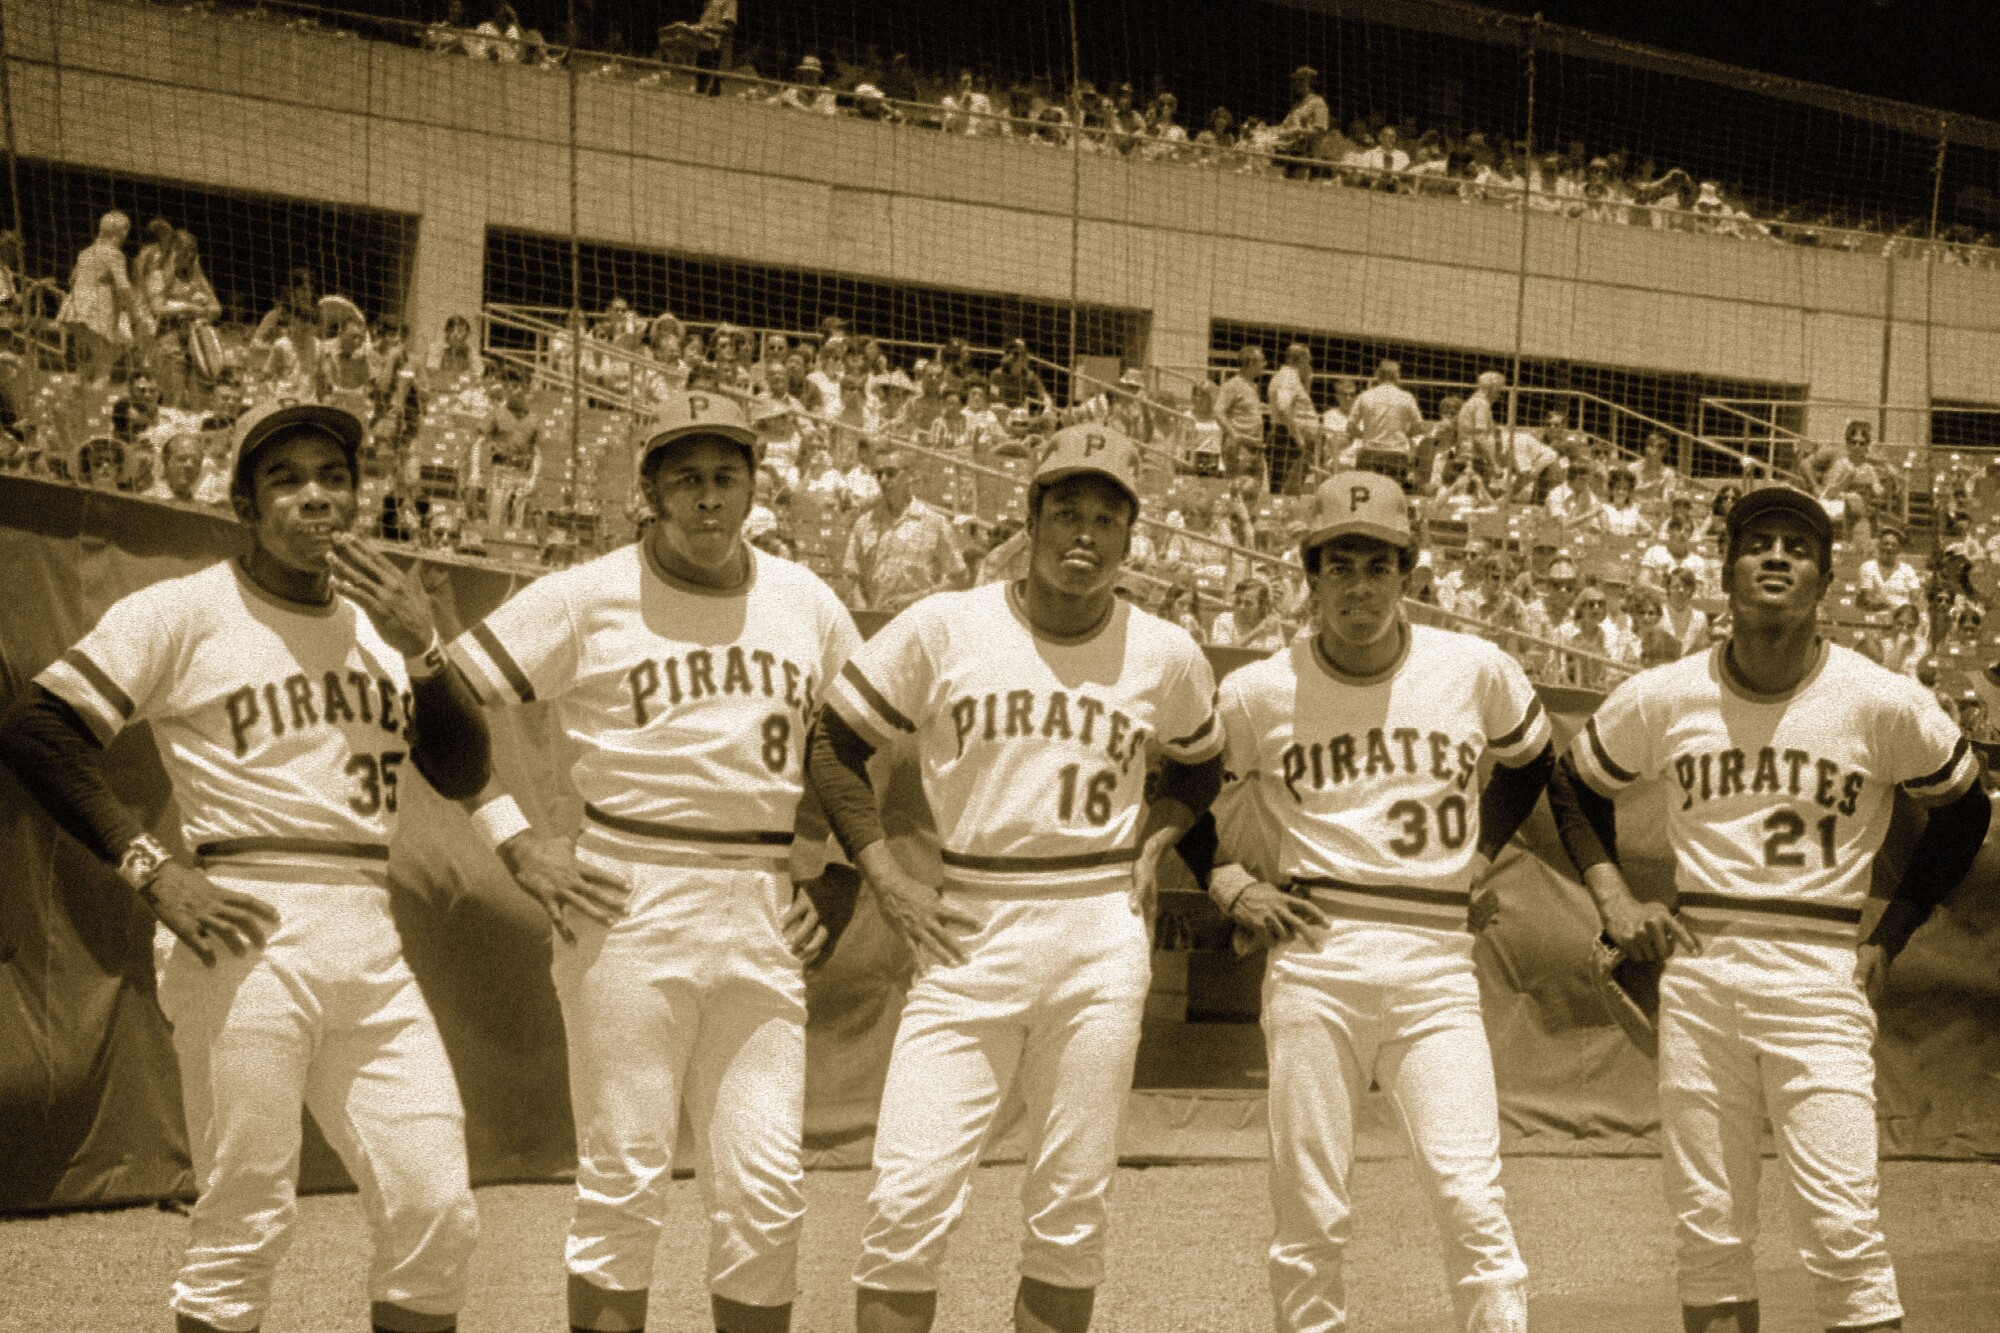 From left to right, Pittsburgh Pirates Manny Sanguillen, Willie Stargell, Al Oliver, Dave Cash and Roberto Clemente